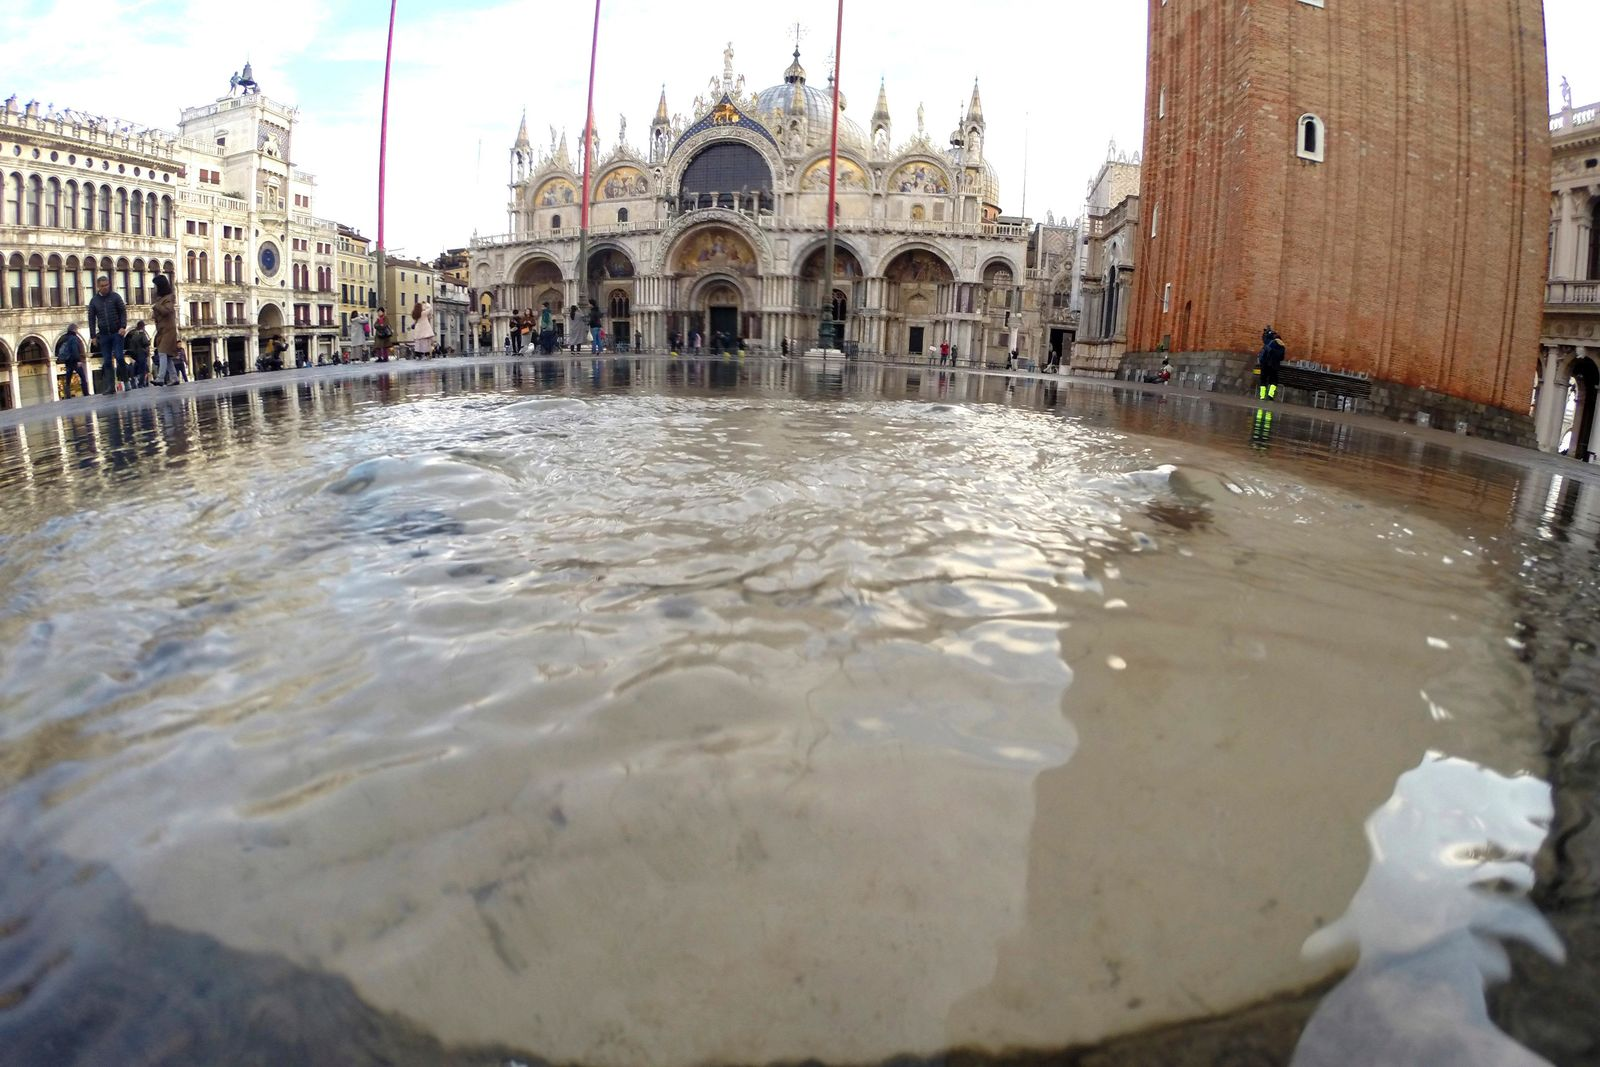 Water starts rising again in St. Mark square in Venice, Italy, Saturday, Nov. 16, 2019. High tidal waters returned to Venice on Saturday, four days after the city experienced its worst flooding in 50 years. (AP Photo/Luca Bruno)